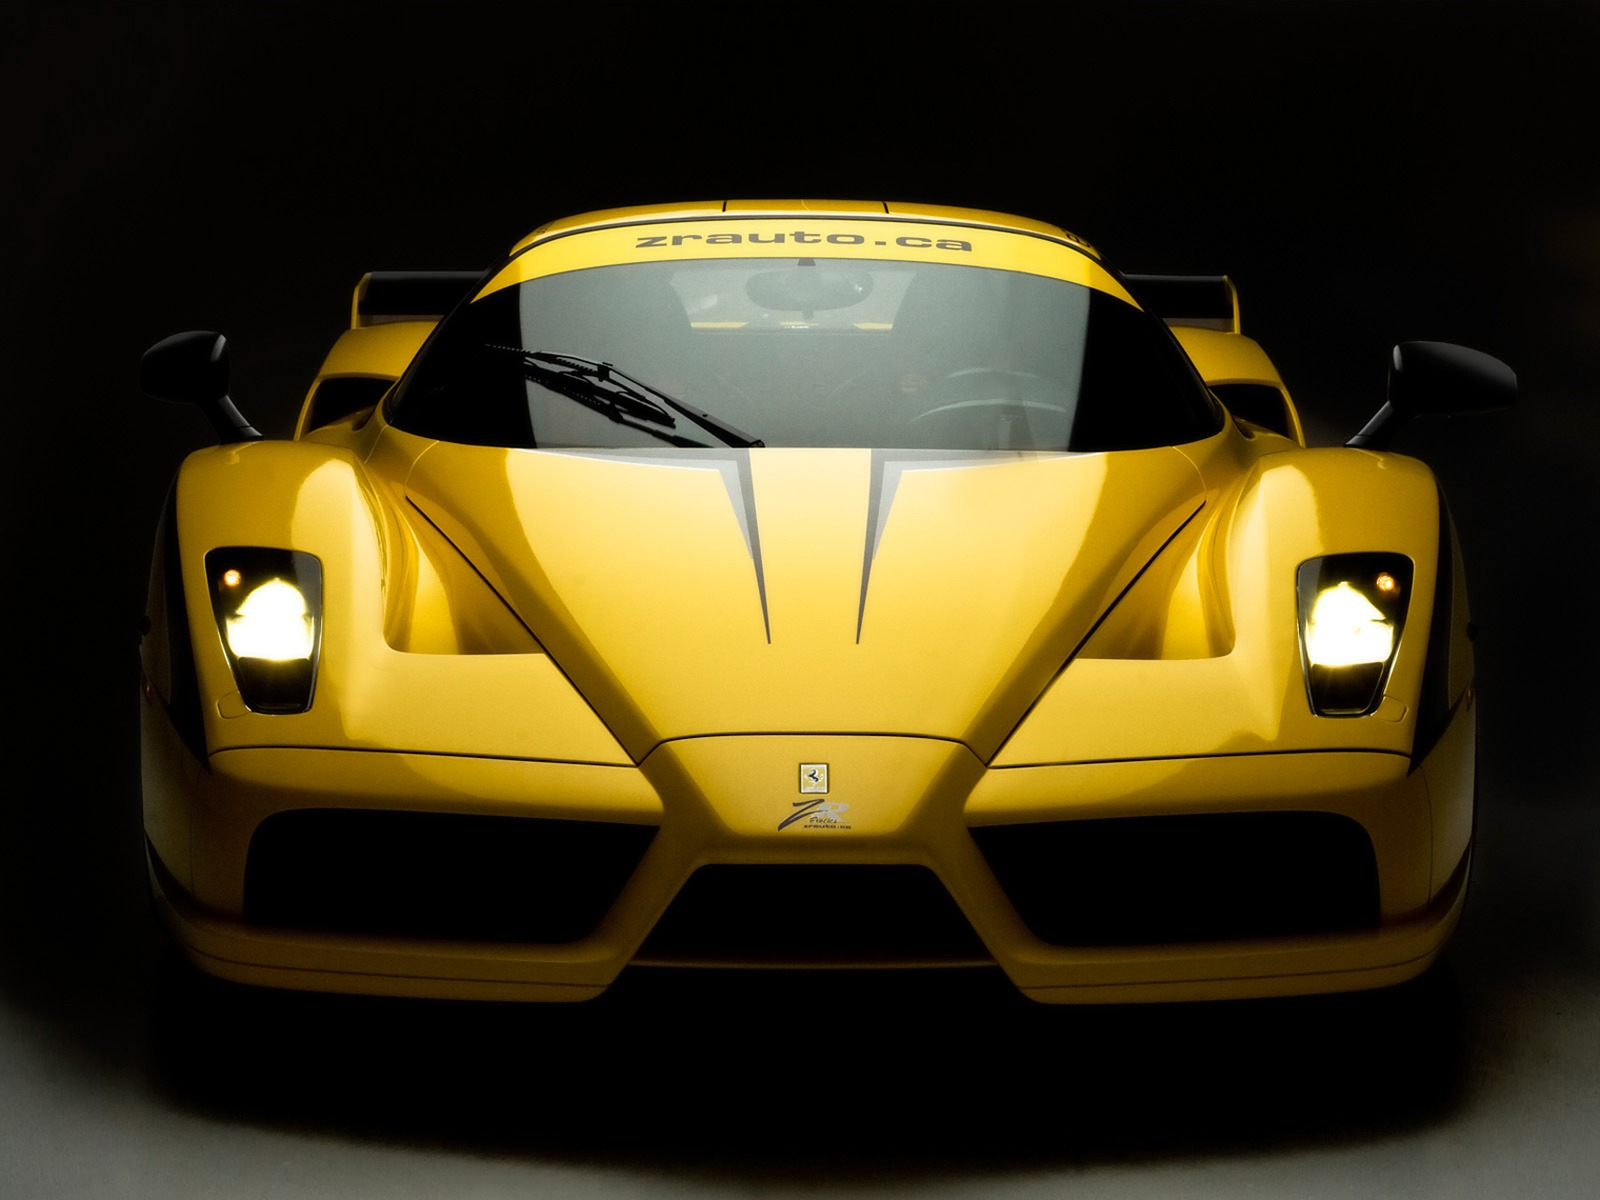 Edo Competition Ferrari Enzo Xx Evolution Wallpaper Ferrari Cars